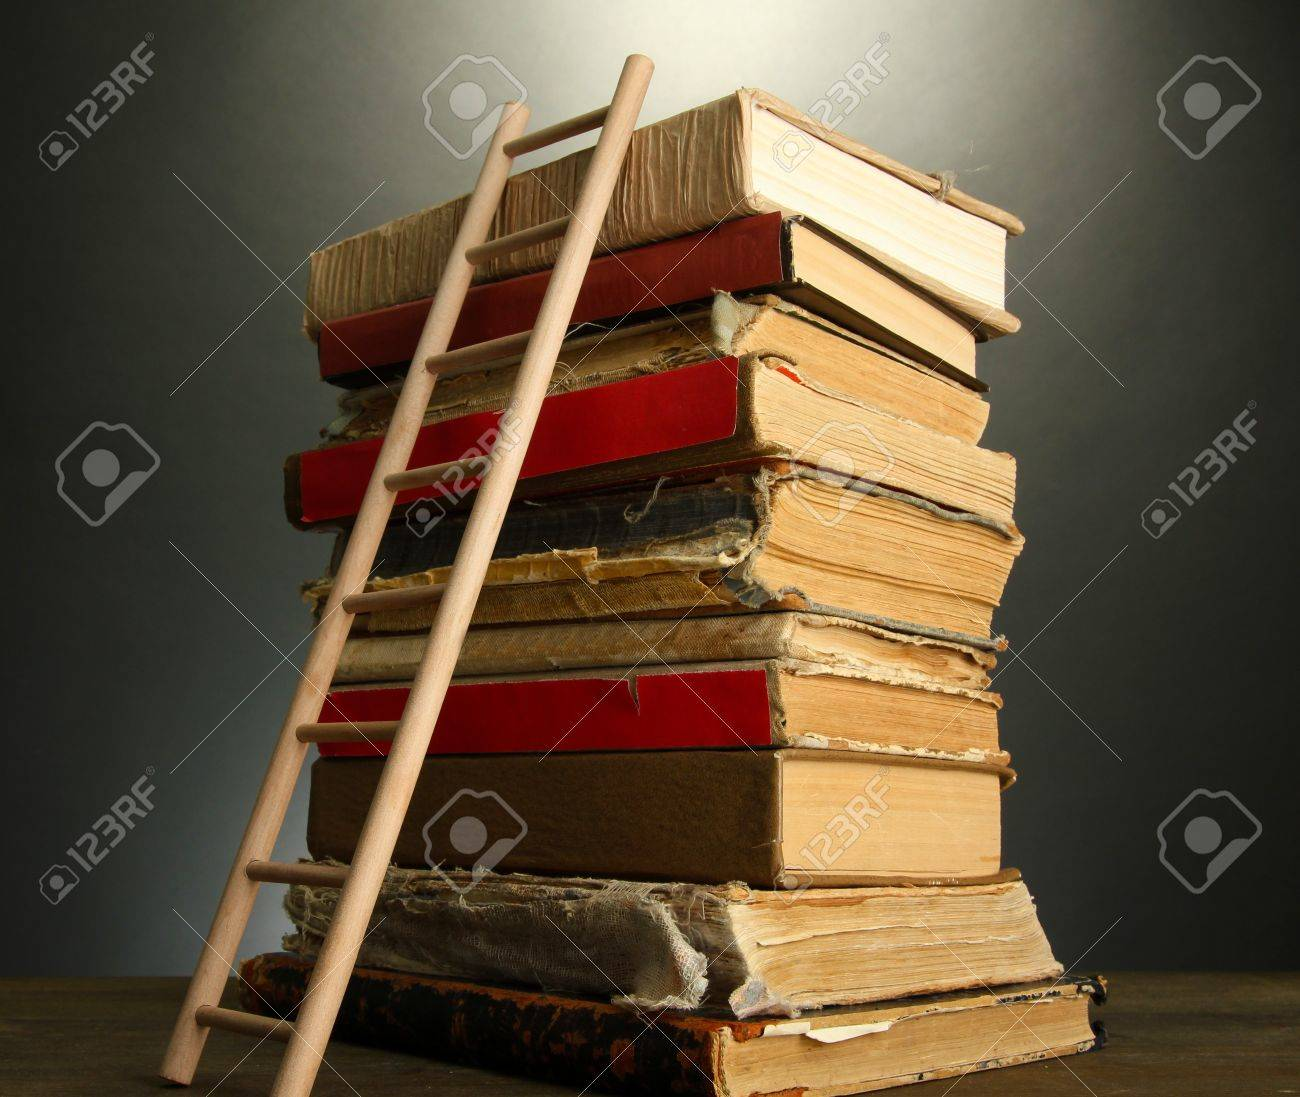 Old books and wooden ladder, on grey background Stock Photo - 17864196